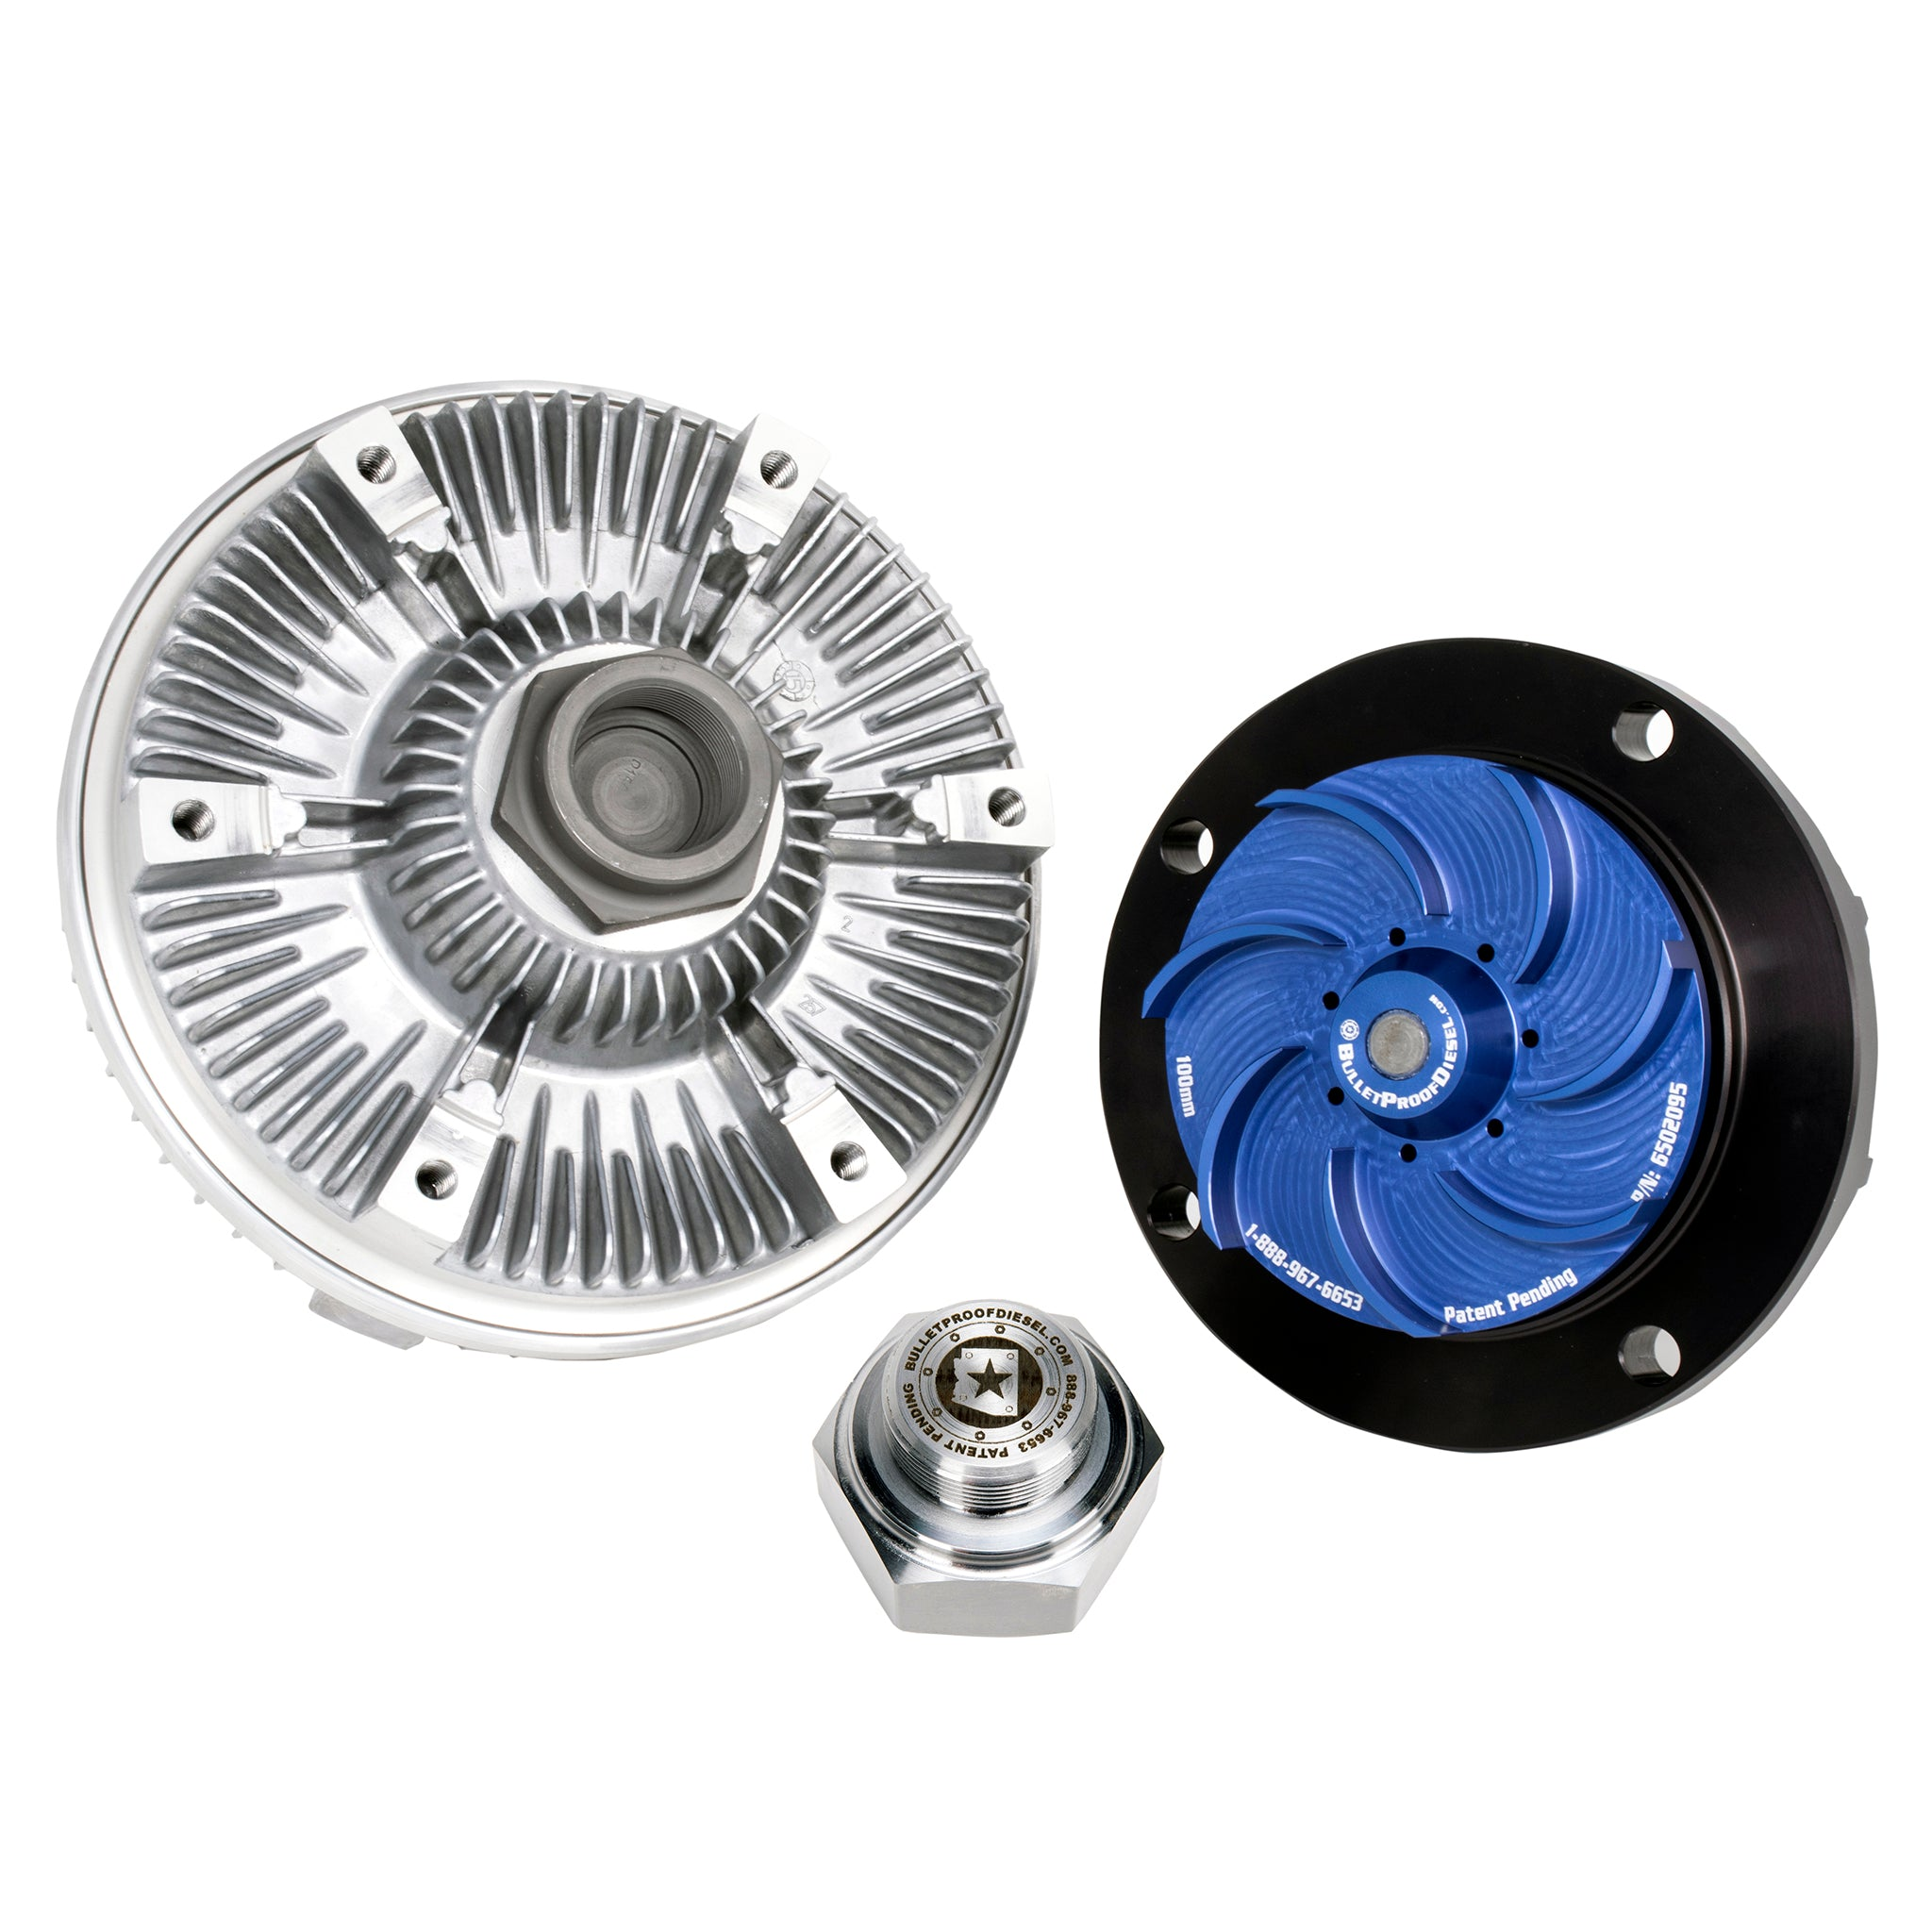 Bullet Proof Diesel Cooling System Upgrade Kit, Ford 6.0L Diesel, 100MM Water Pump Impeller